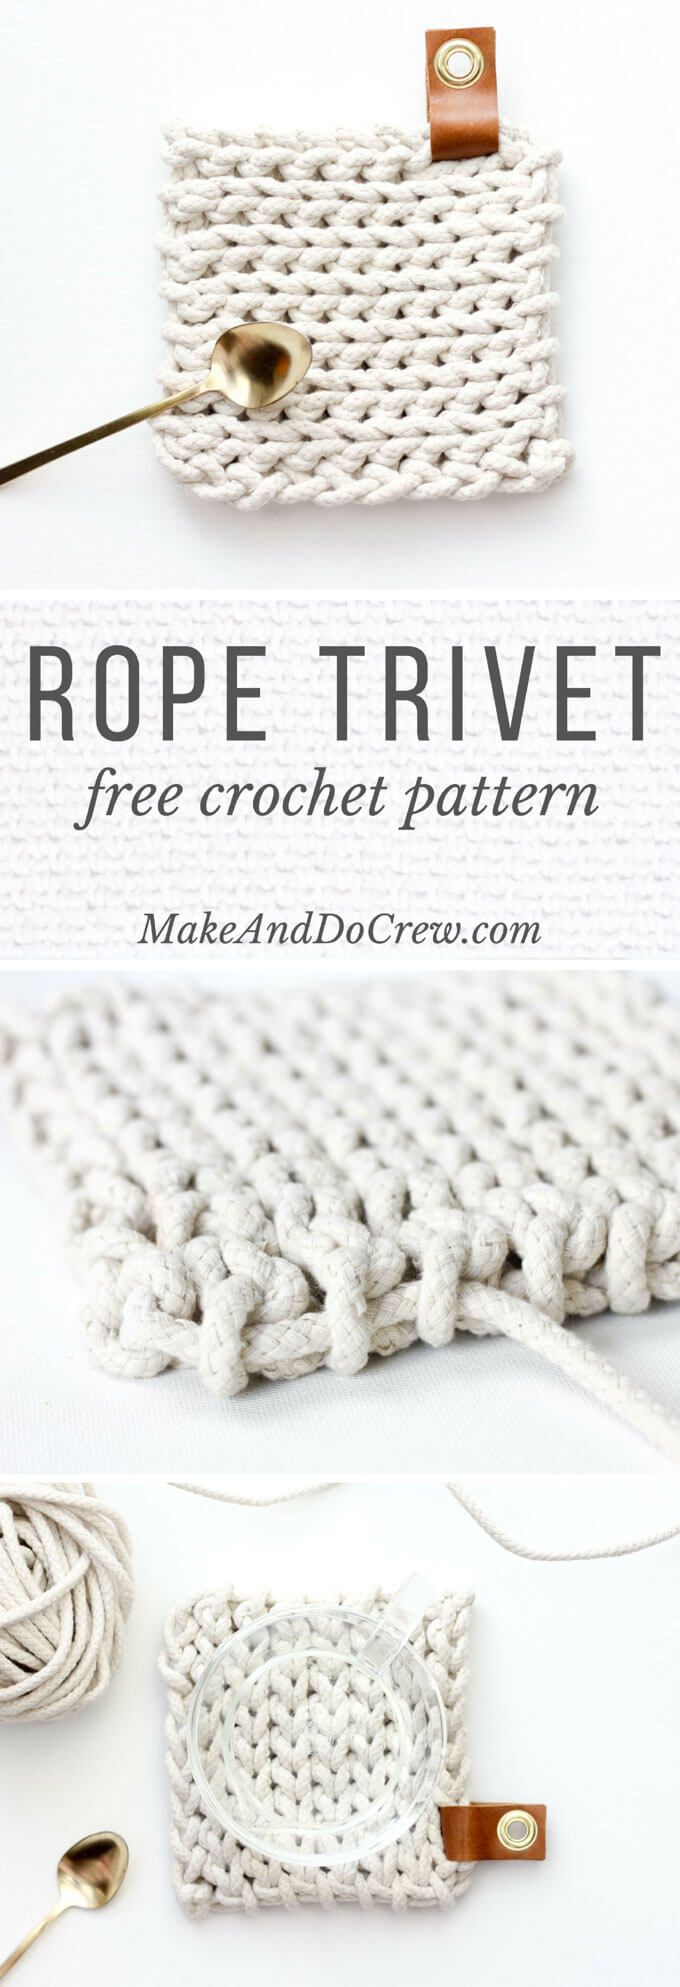 This free crochet trivet pattern uses rope clothesline to create a super modern, West-Elm-worthy DIY hostess gift. Add a leather accent and it's perfection! via @makeanddocrew